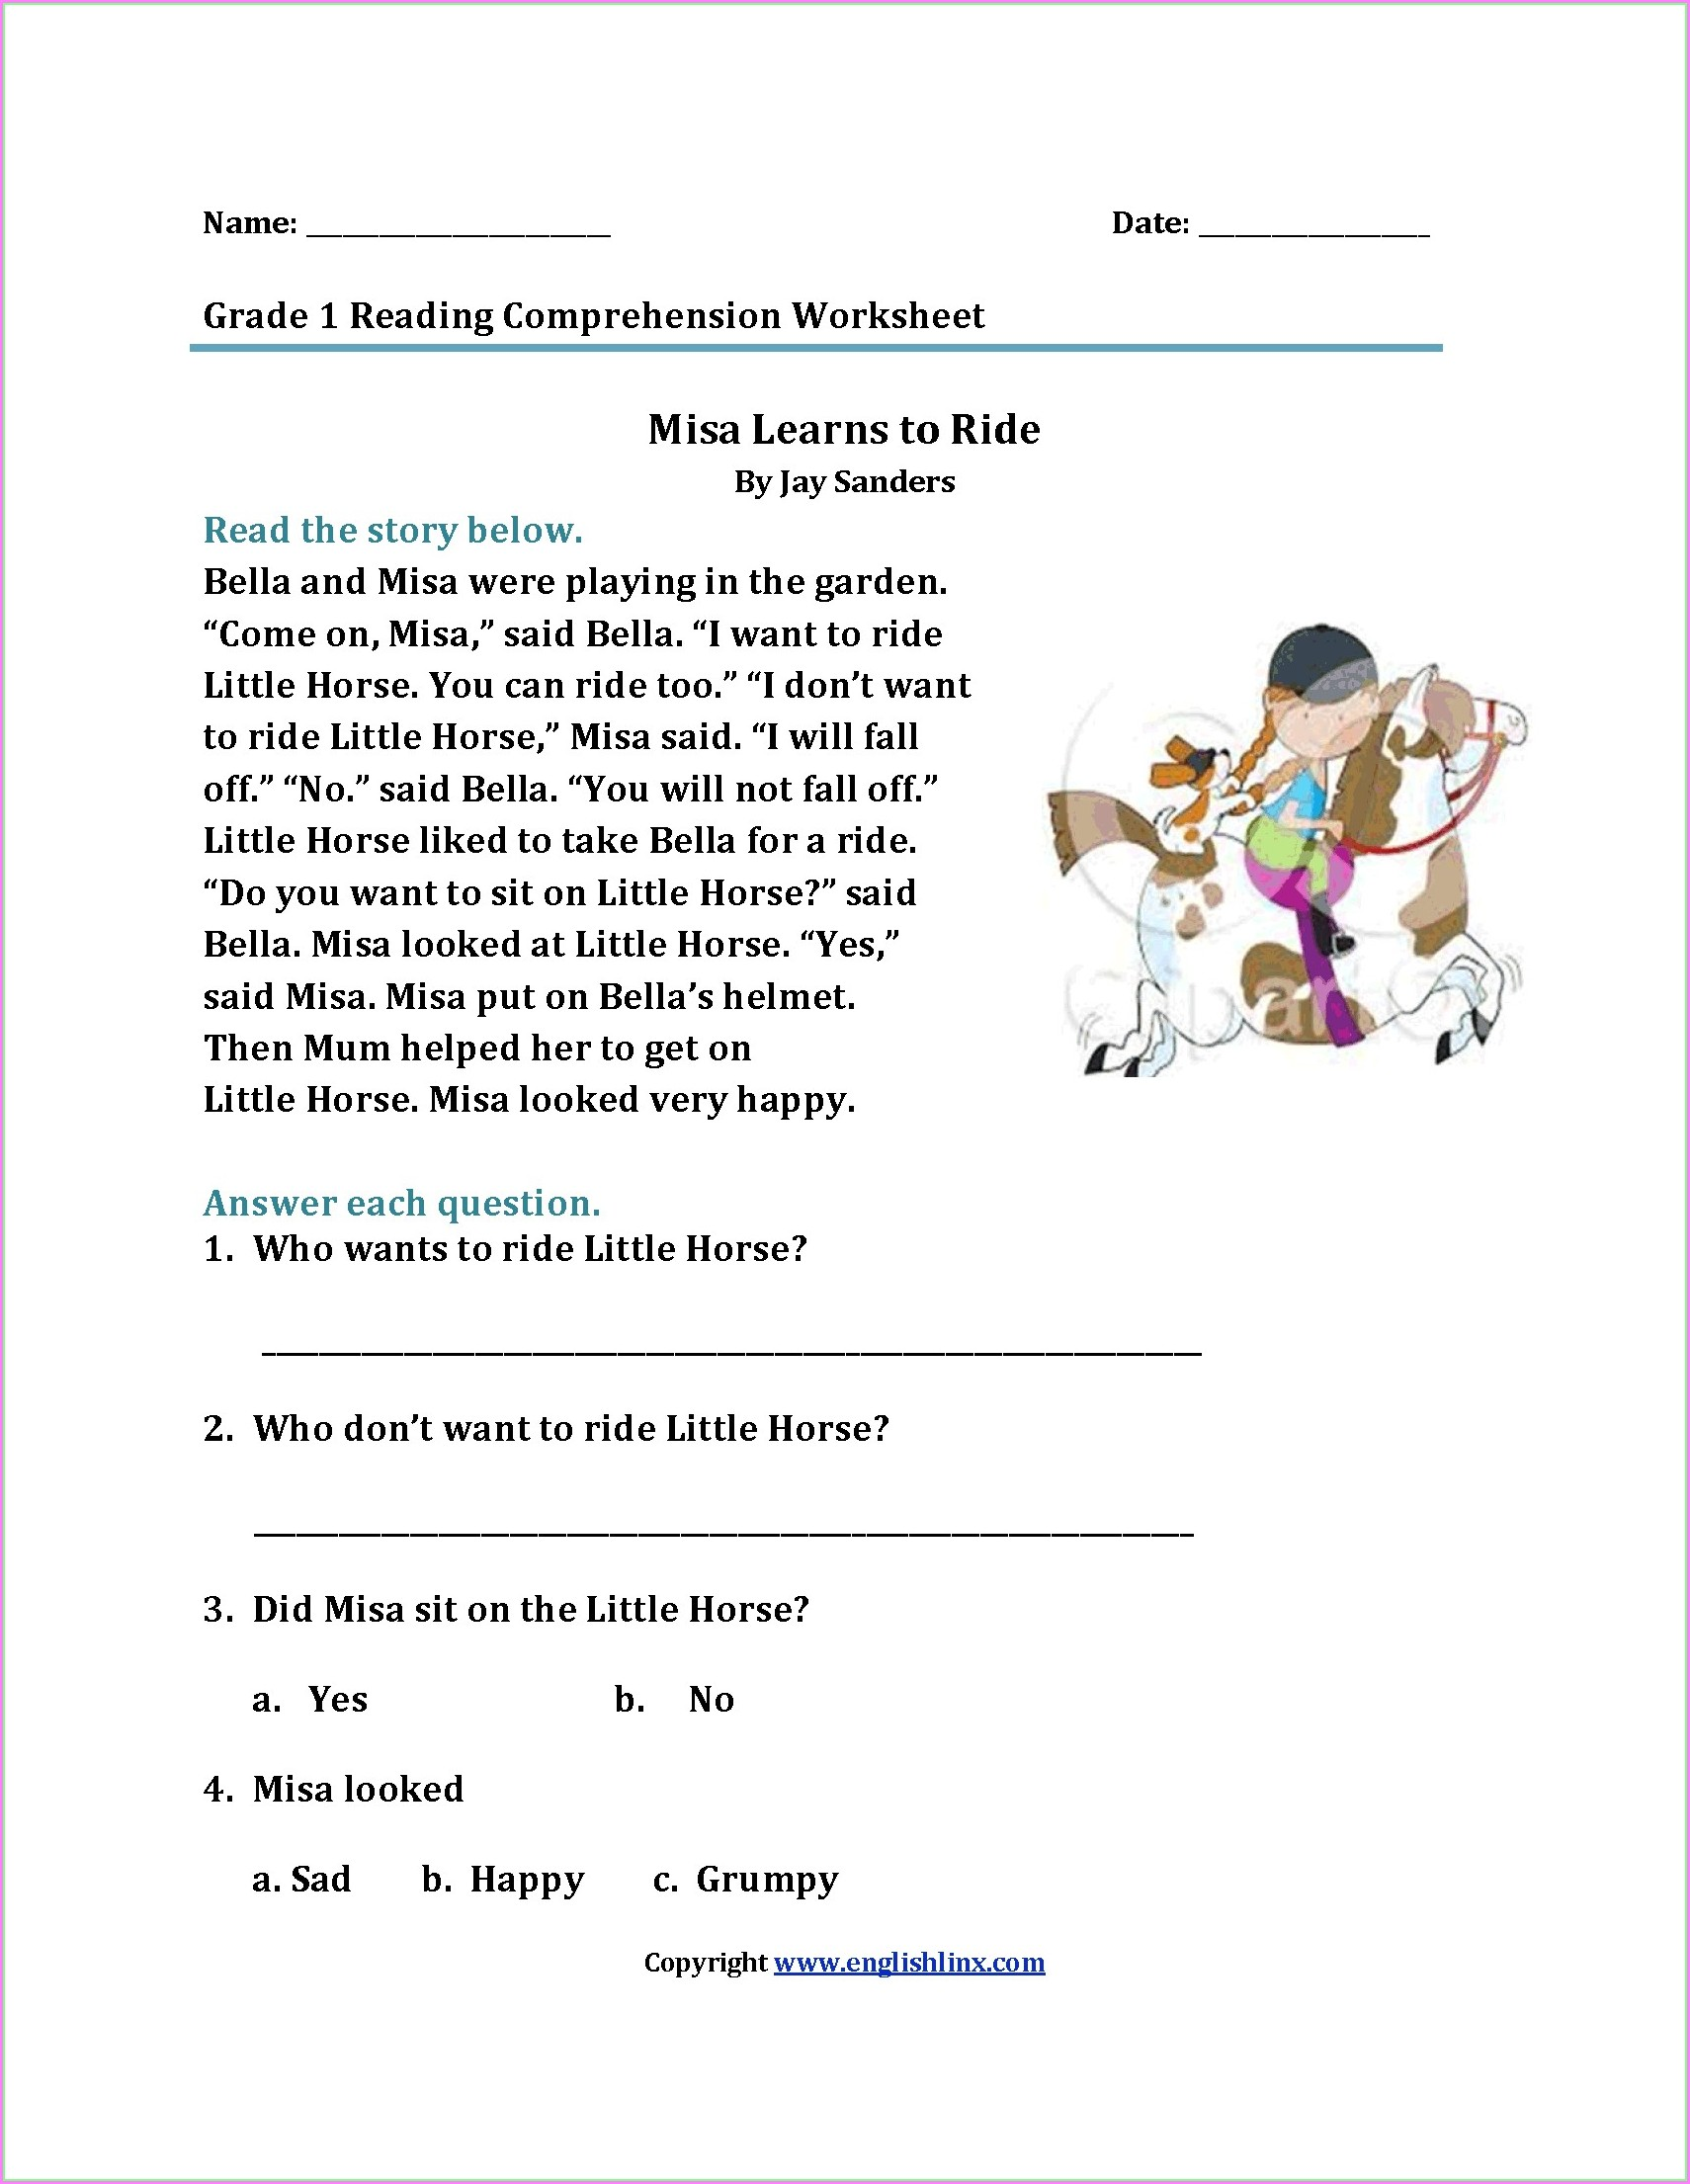 Year 4 Comprehension Worksheets Free